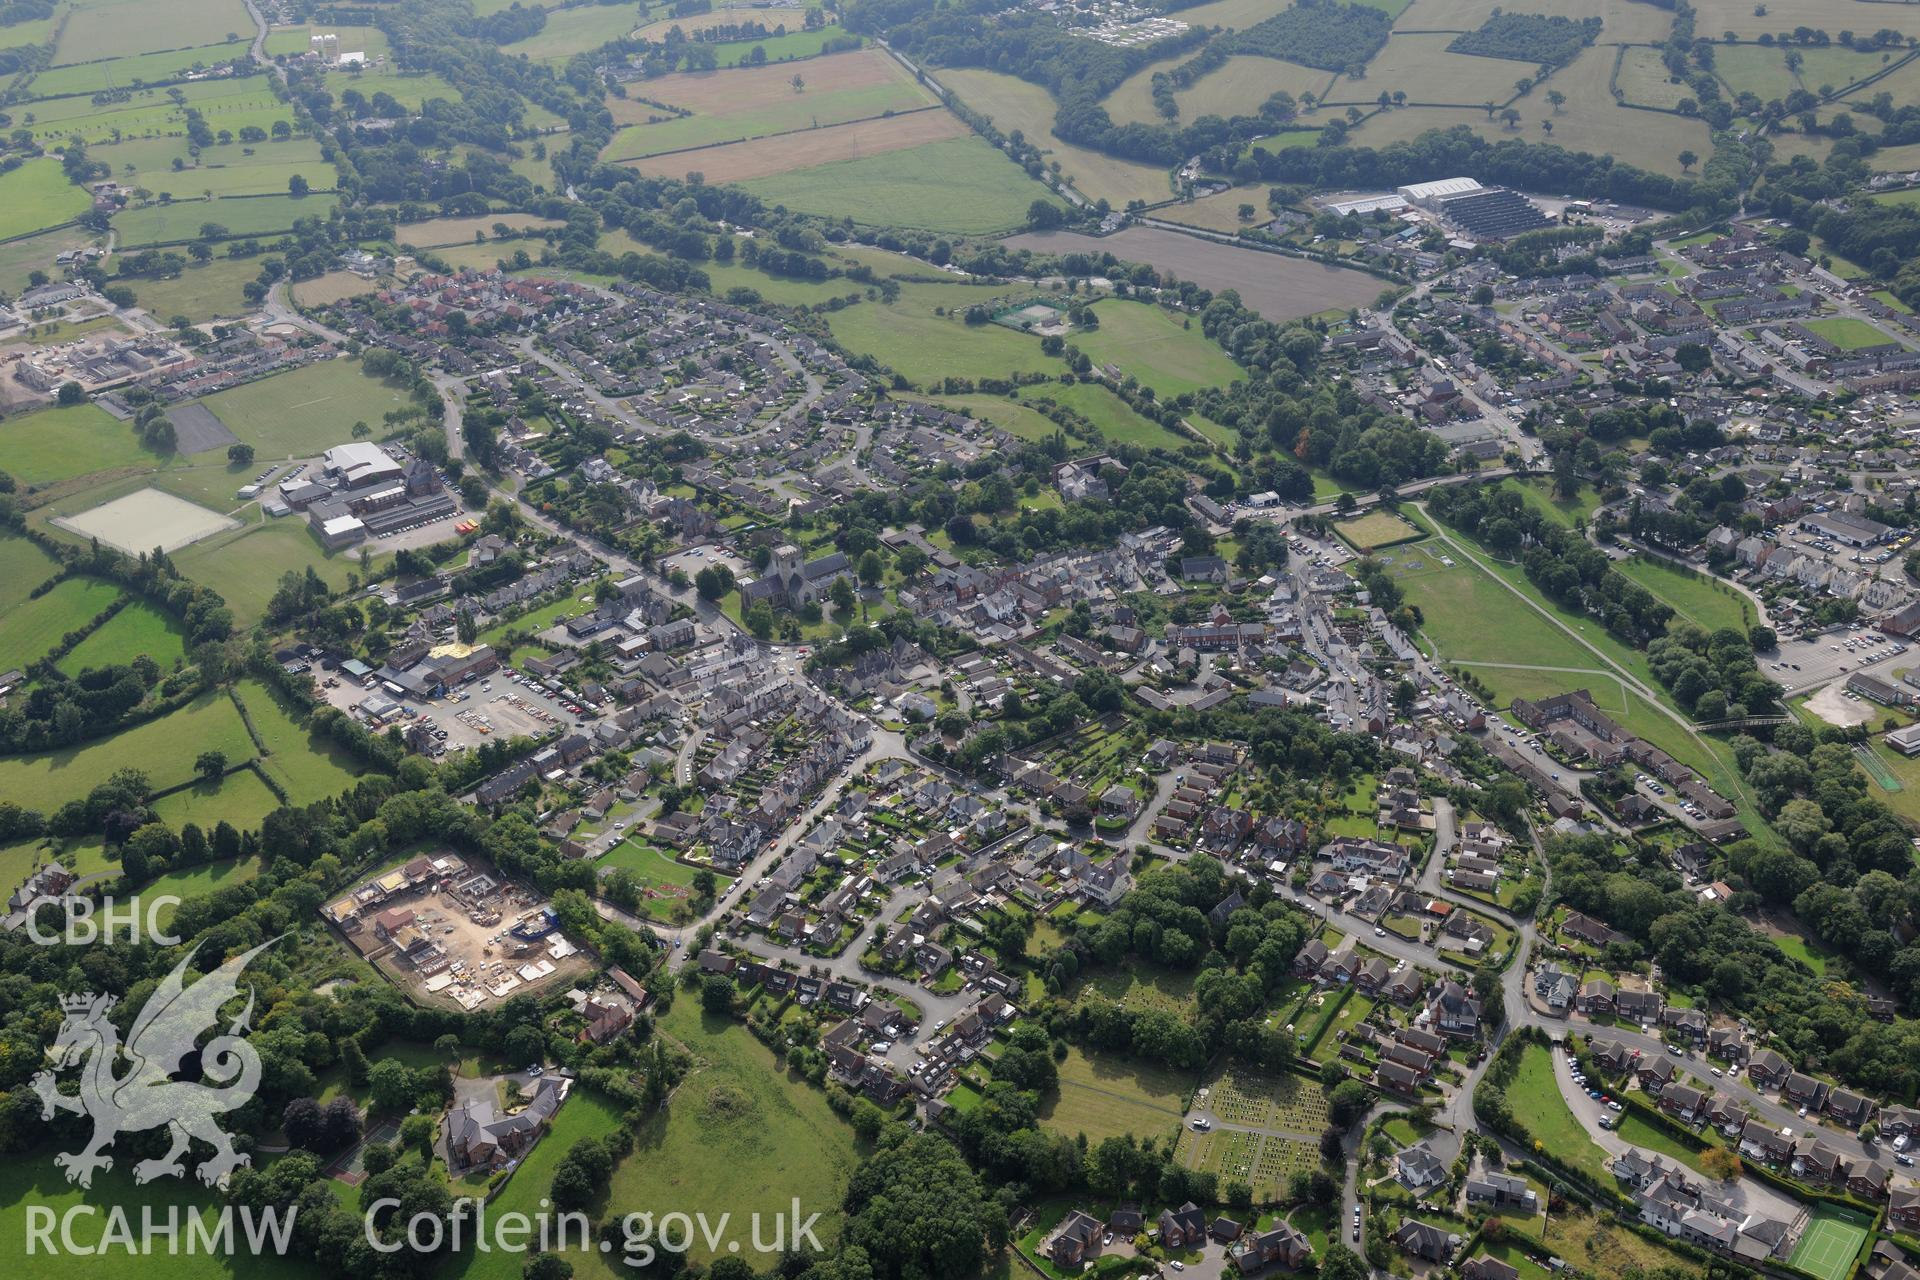 The city of St. Asaph. Oblique aerial photograph taken during the Royal Commission's programme of archaeological aerial reconnaissance by Toby Driver on 11th September 2015.